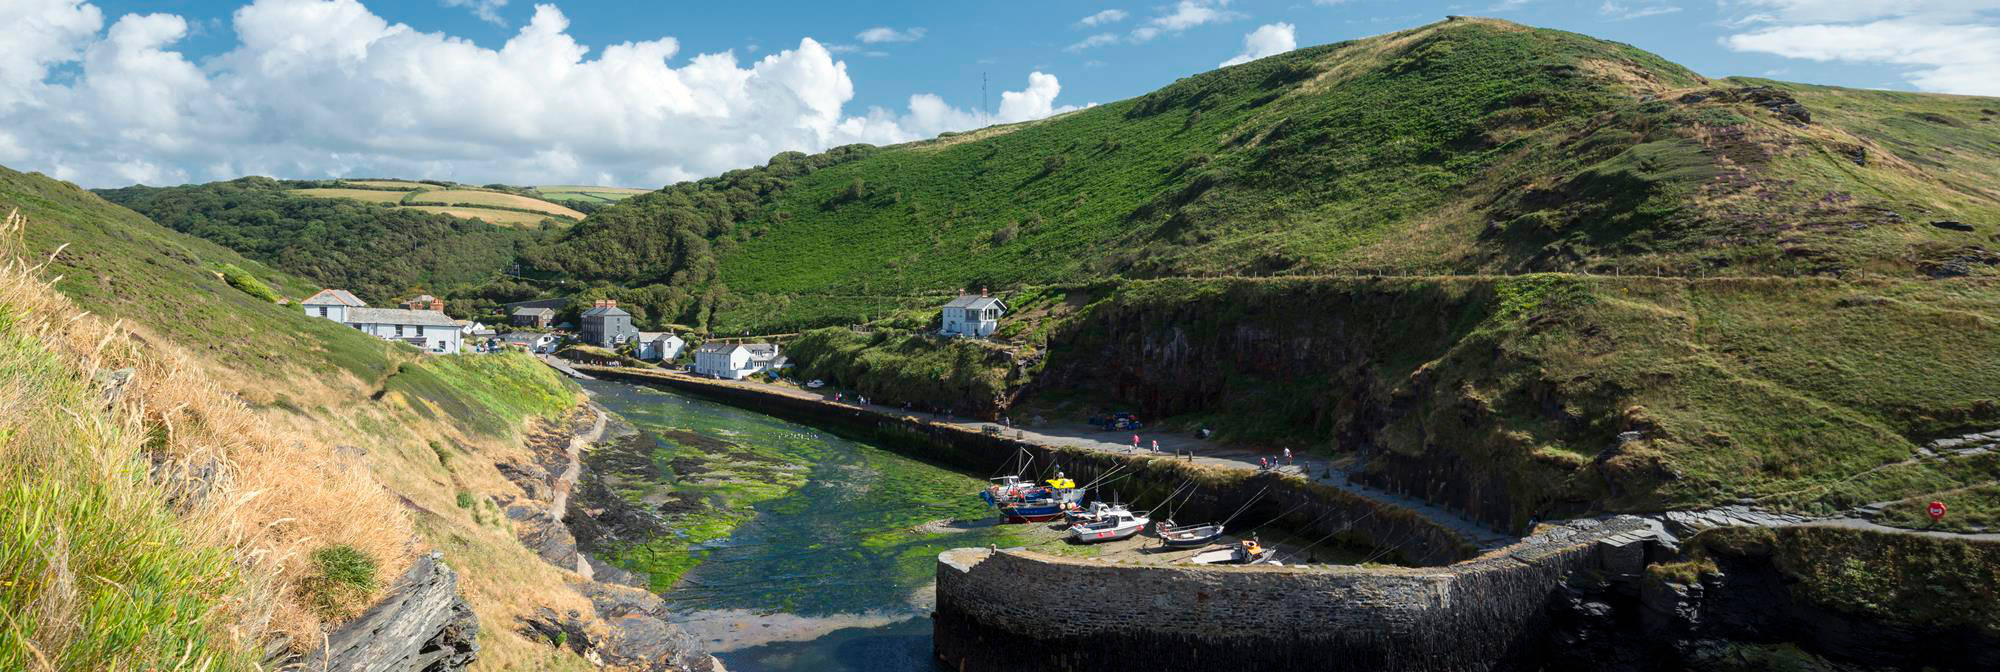 Boscastle Harbour in Cornwall